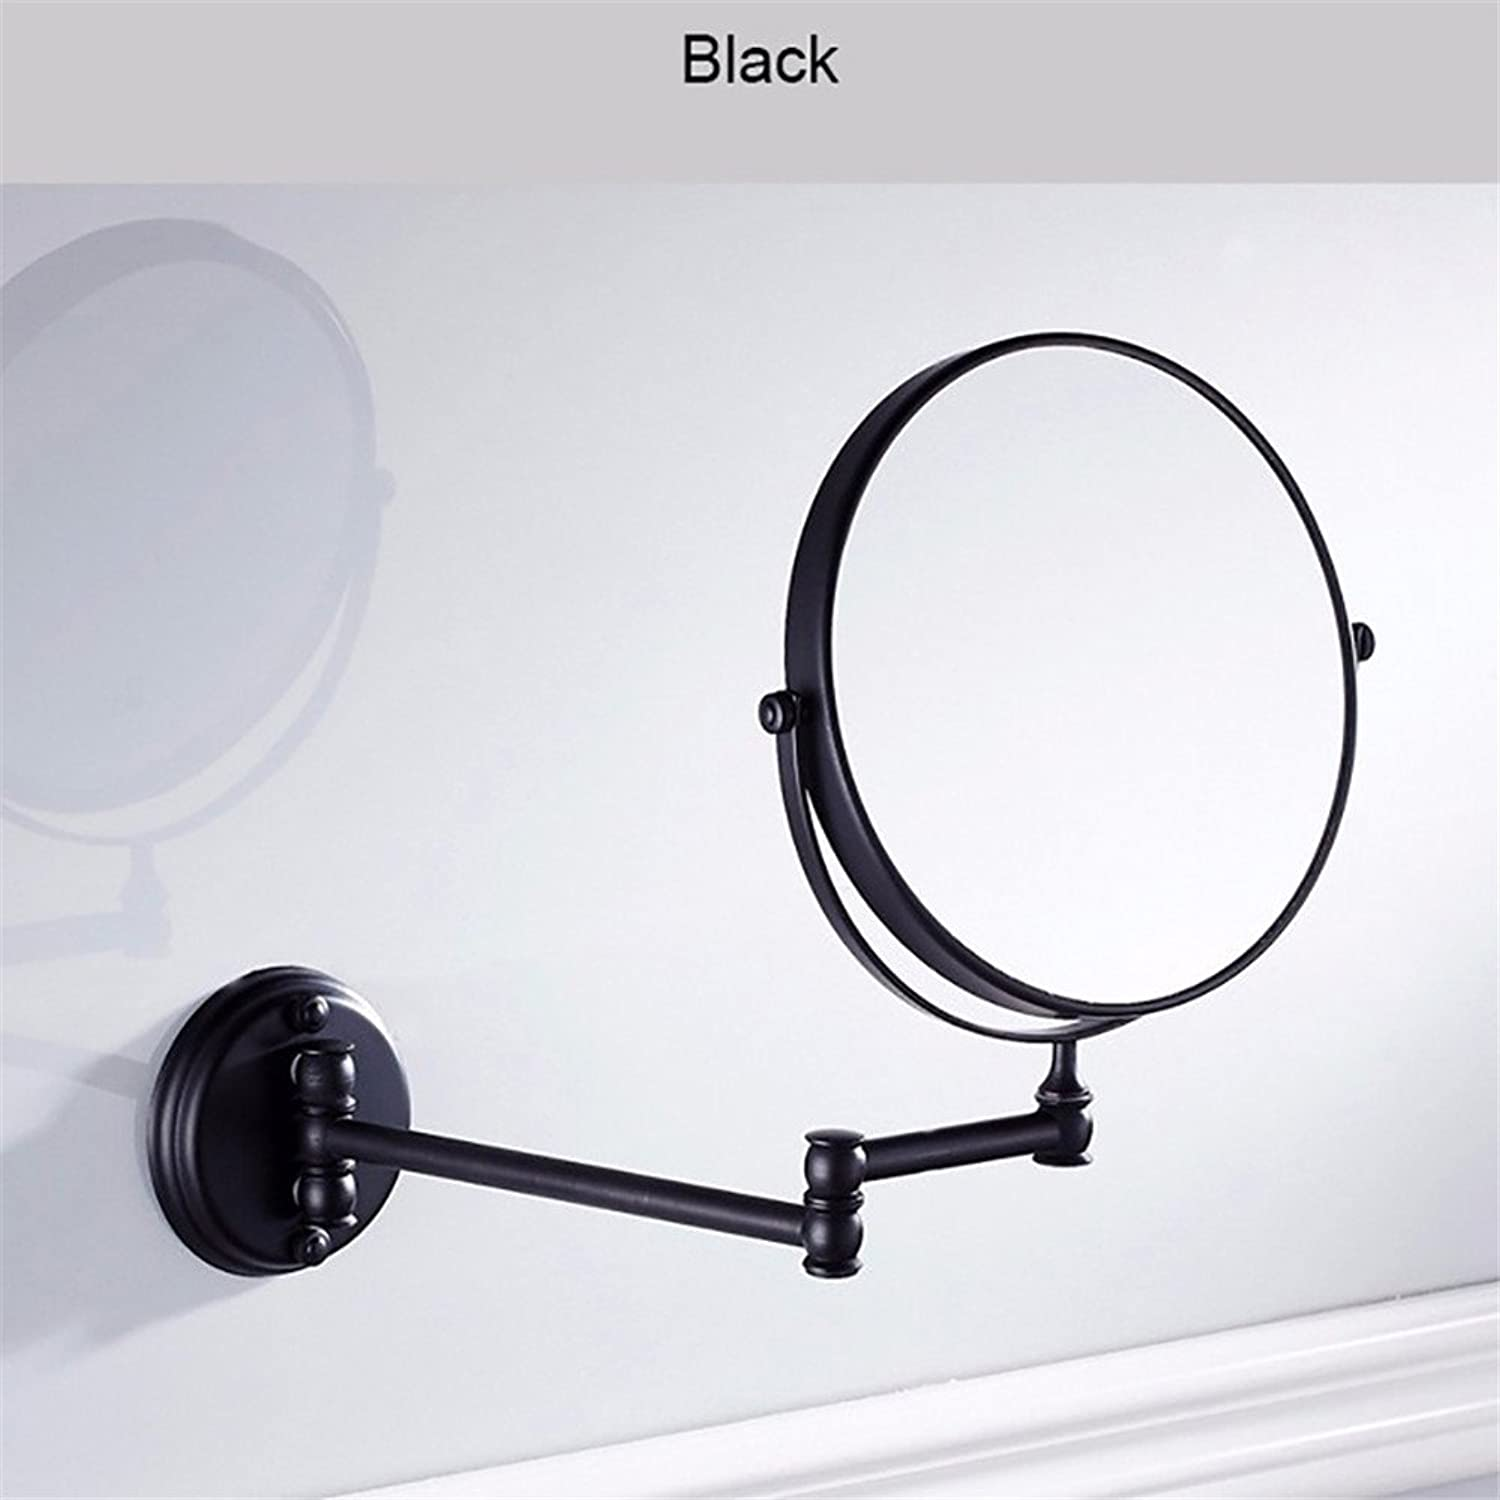 8 Inch Bathroom Mirror Dual Arm Extend 2 Face Round Copper Framed Make Up Mirror Chrome Wall Mounted 1X3X3 Magnifying ,Black